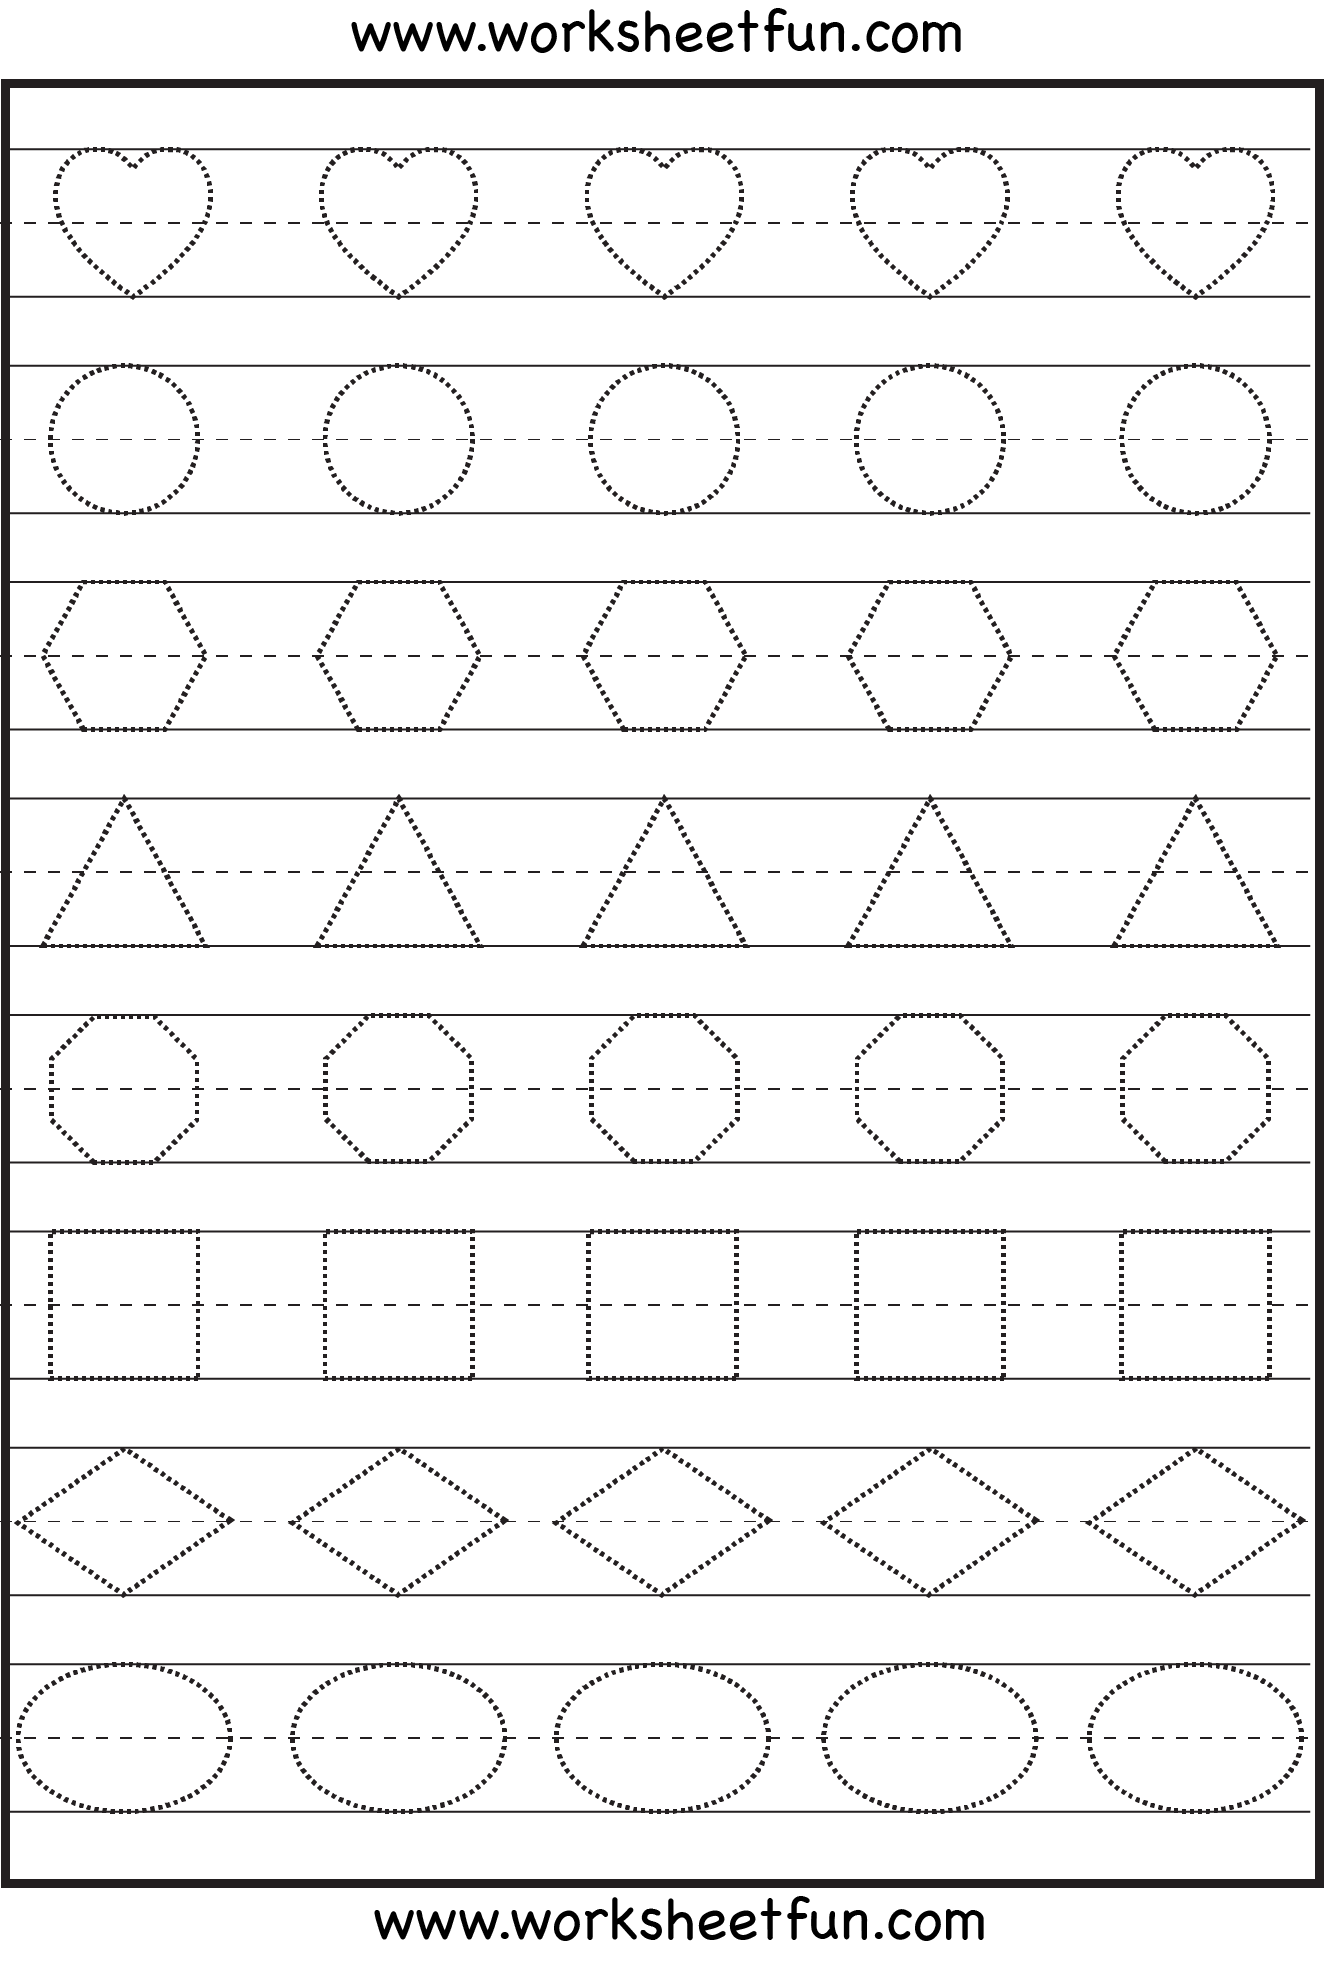 Printables Free Printable Preschool Worksheets Tracing free printable name worksheets syndeomedia 1000 images about school on pinterest alphabet worksheets